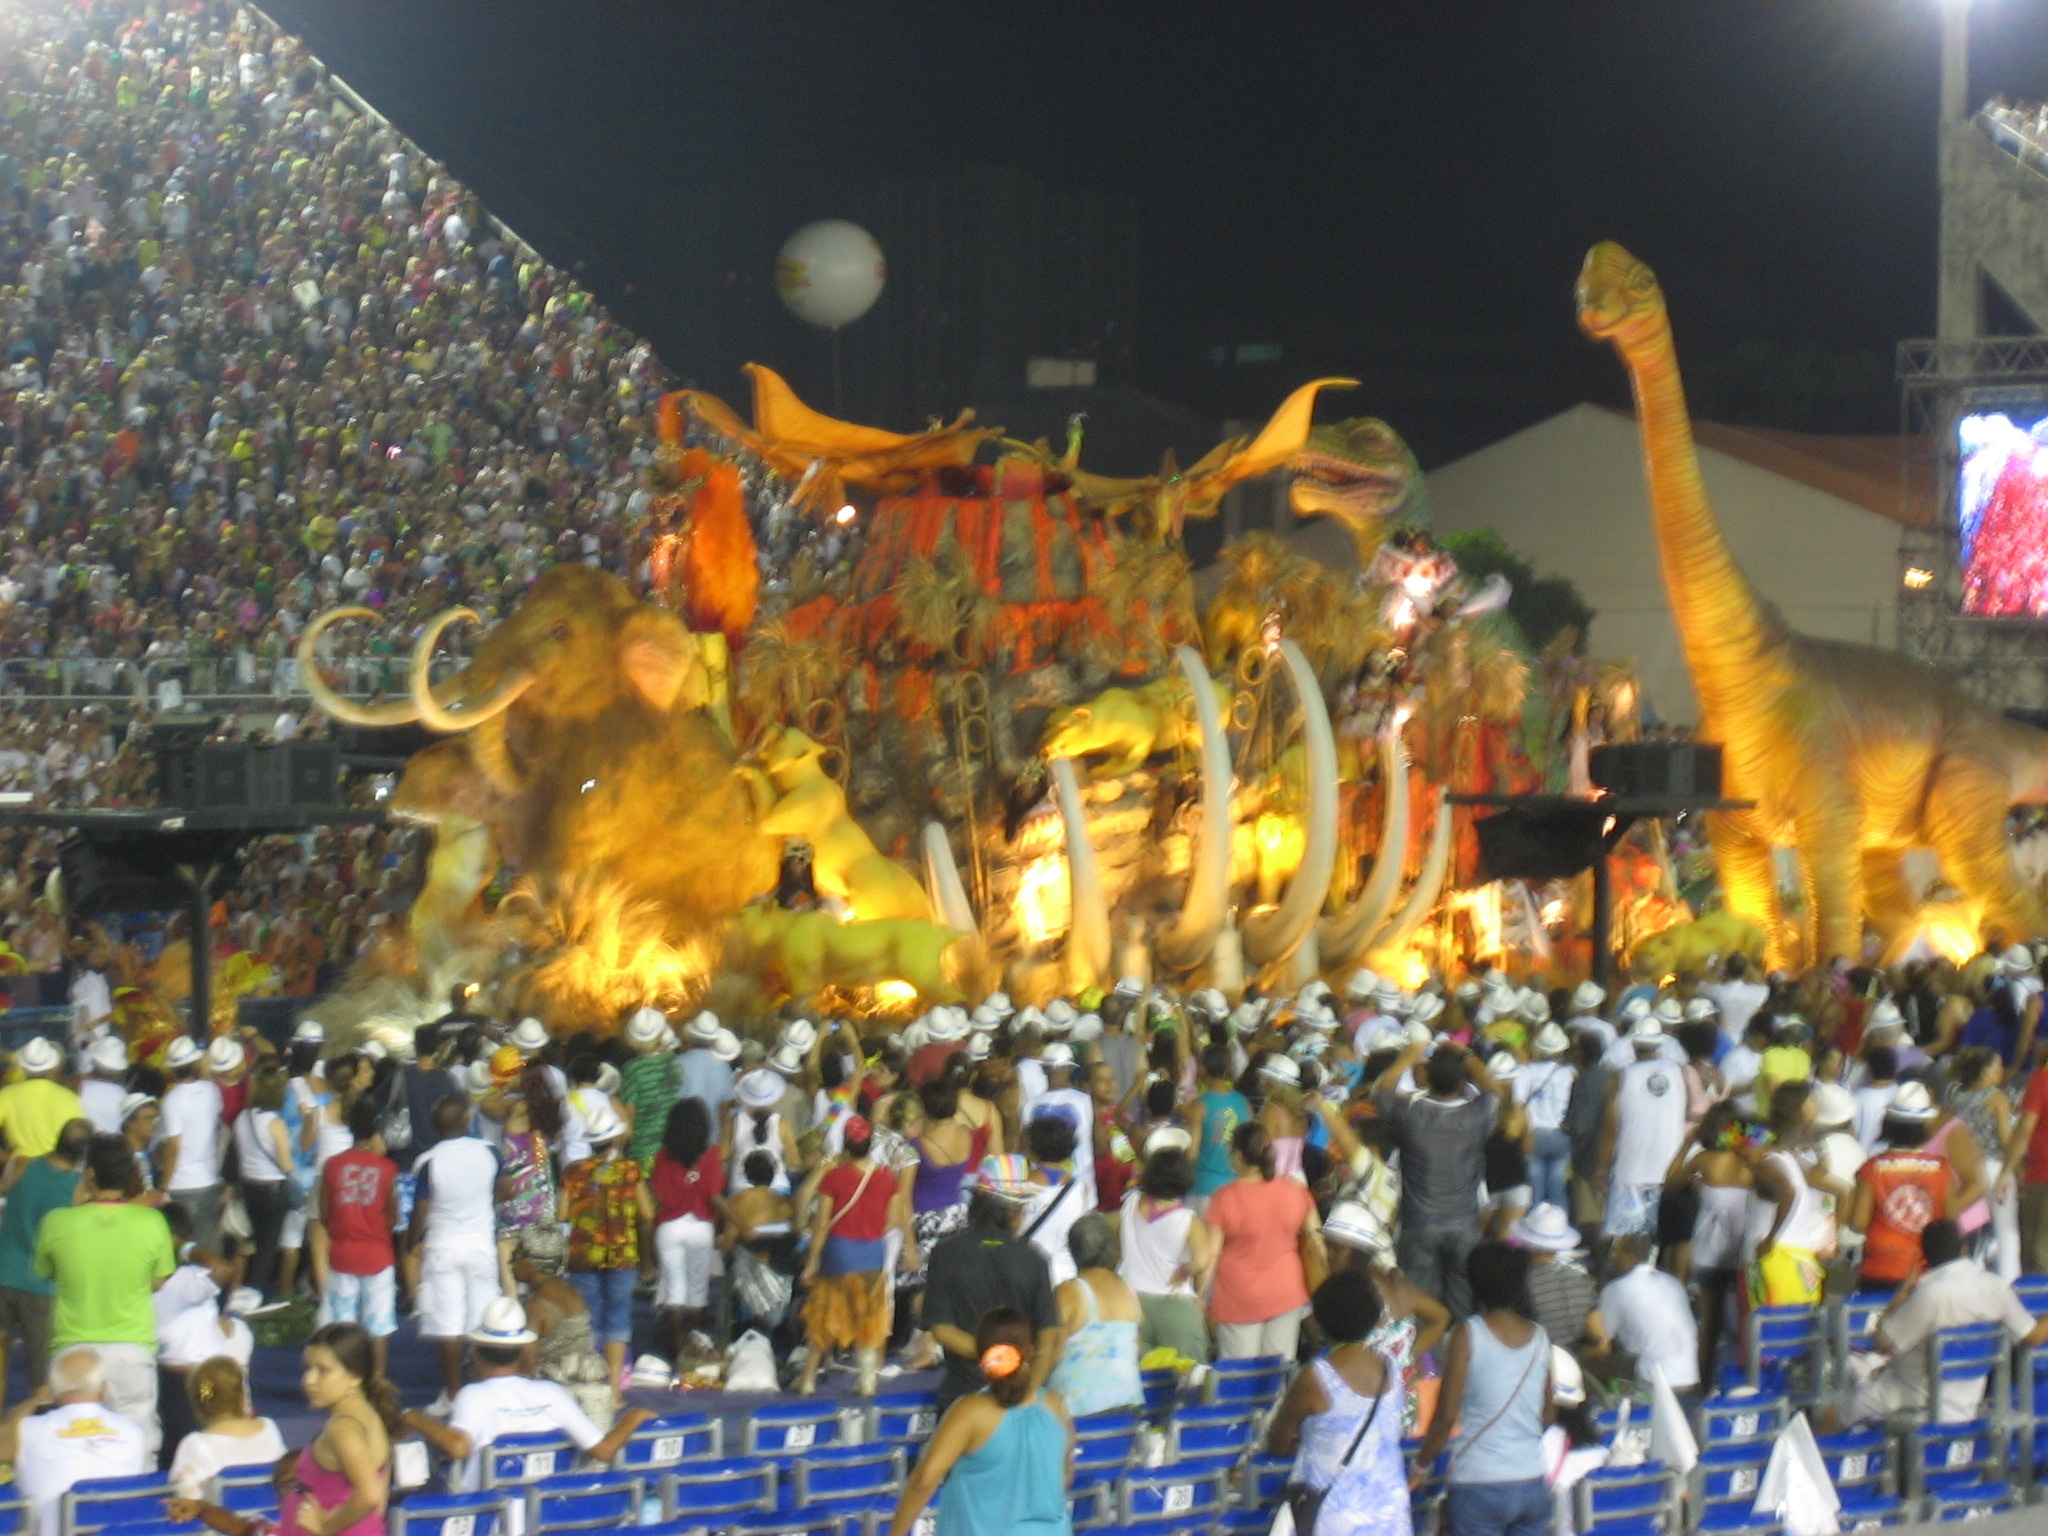 An awesome float at Carnaval.